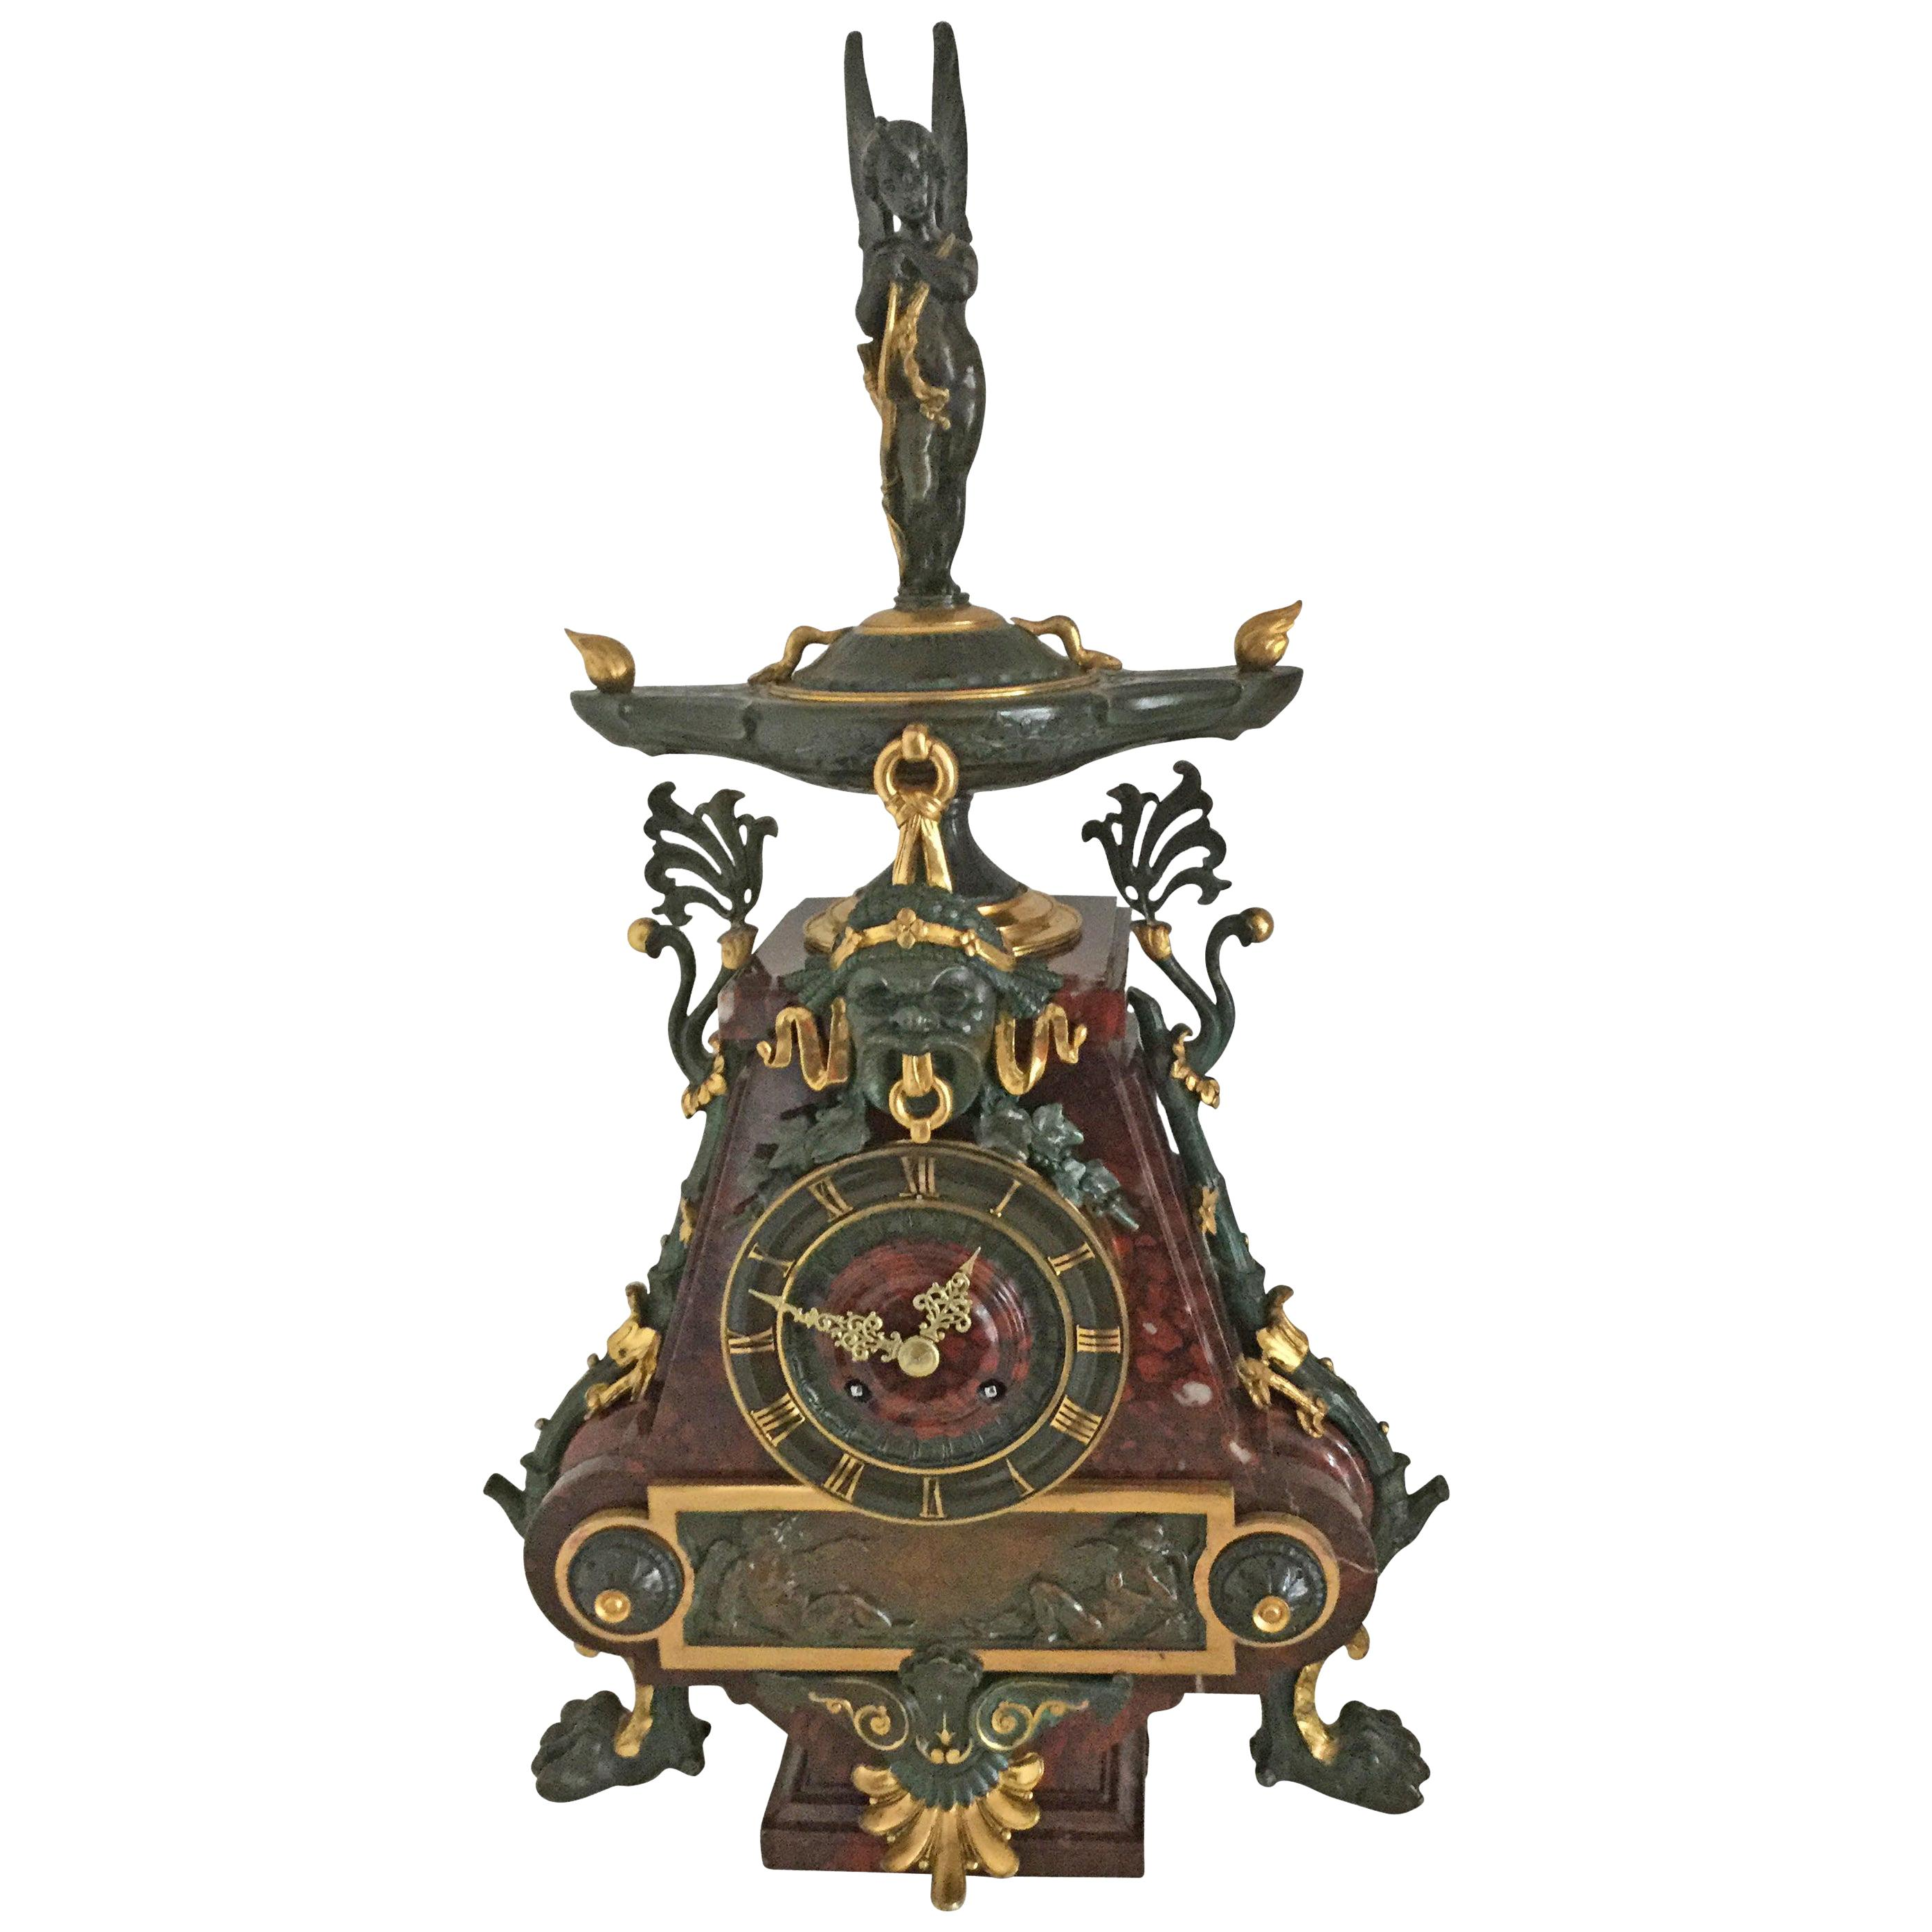 French Gilt Bronze and Rouge Marble Mantel Clock by Charpentier Paris Circa 1880